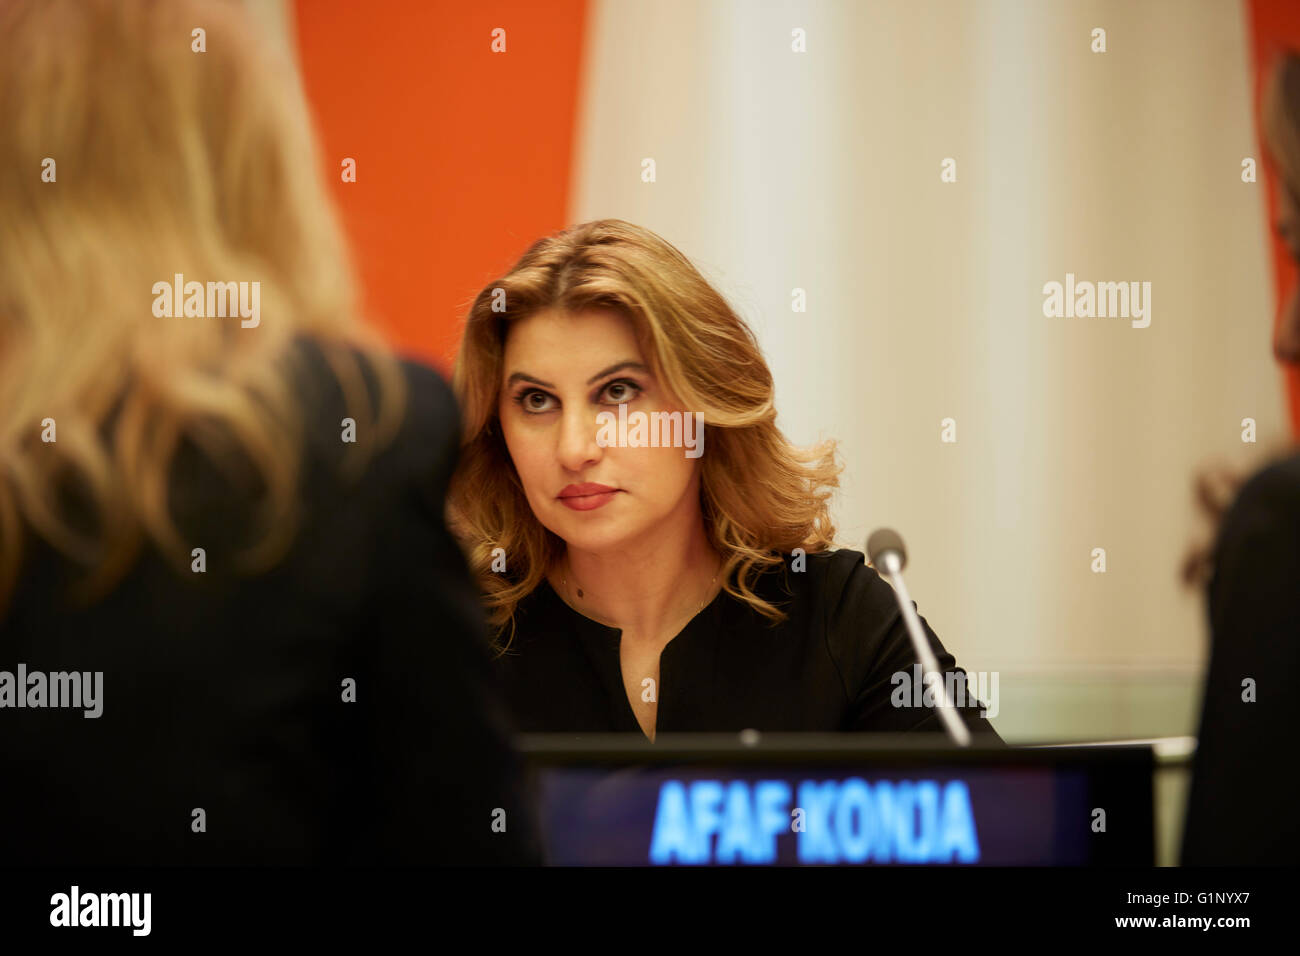 New York, United States. 16th May, 2016. Moderator Afaf Konja listens to participant during United Nations HQ International - Stock Image